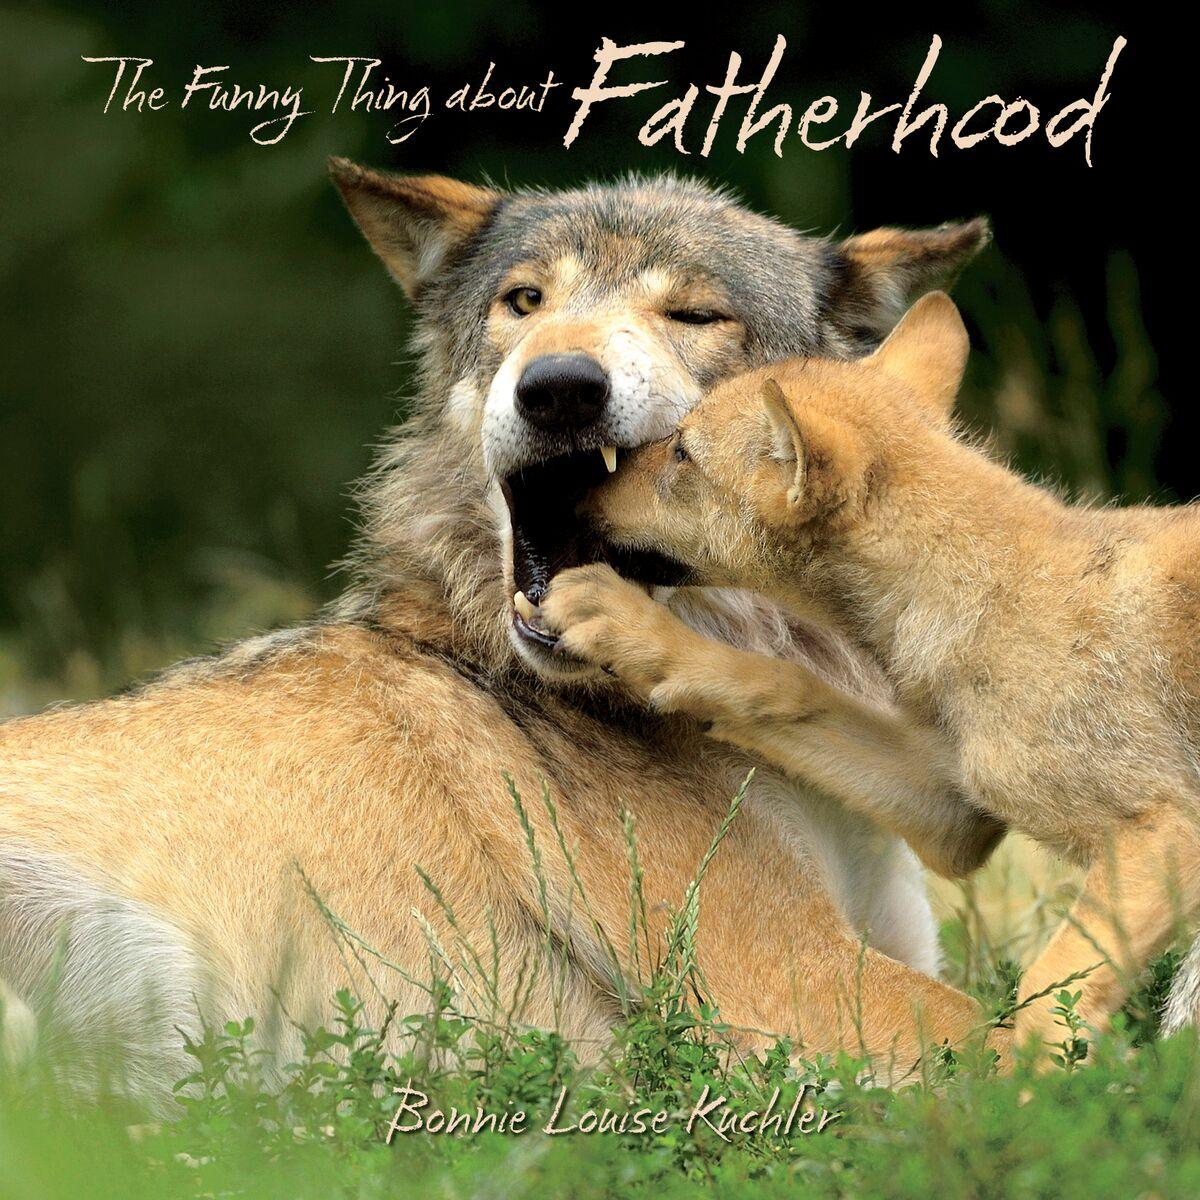 Funny Thing about Fatherhood (Hardcover) by Willow Creek Press